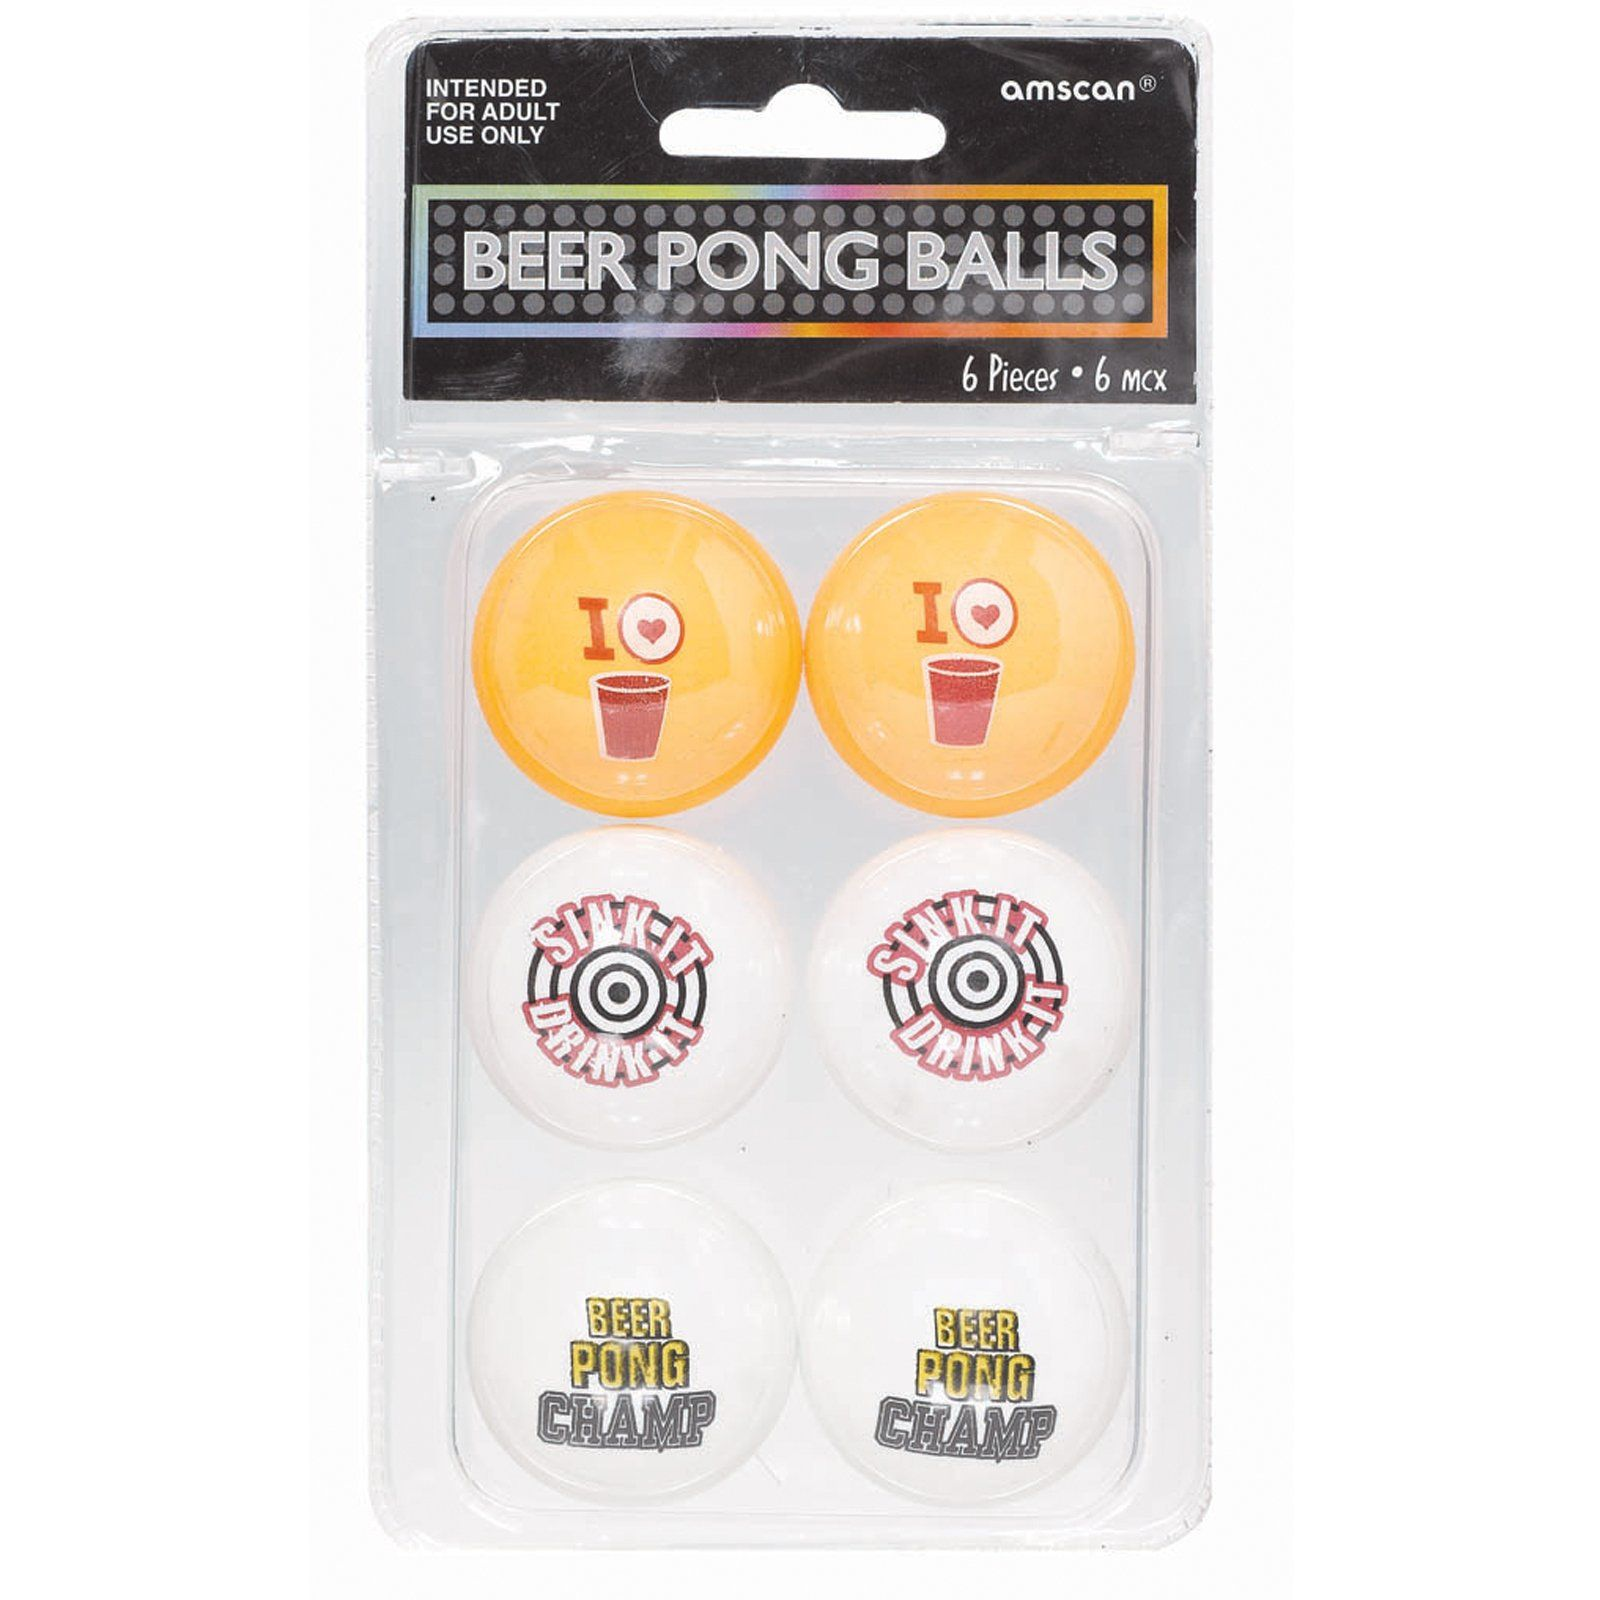 Beer Ping Pong Balls (6 count) Description The rules are